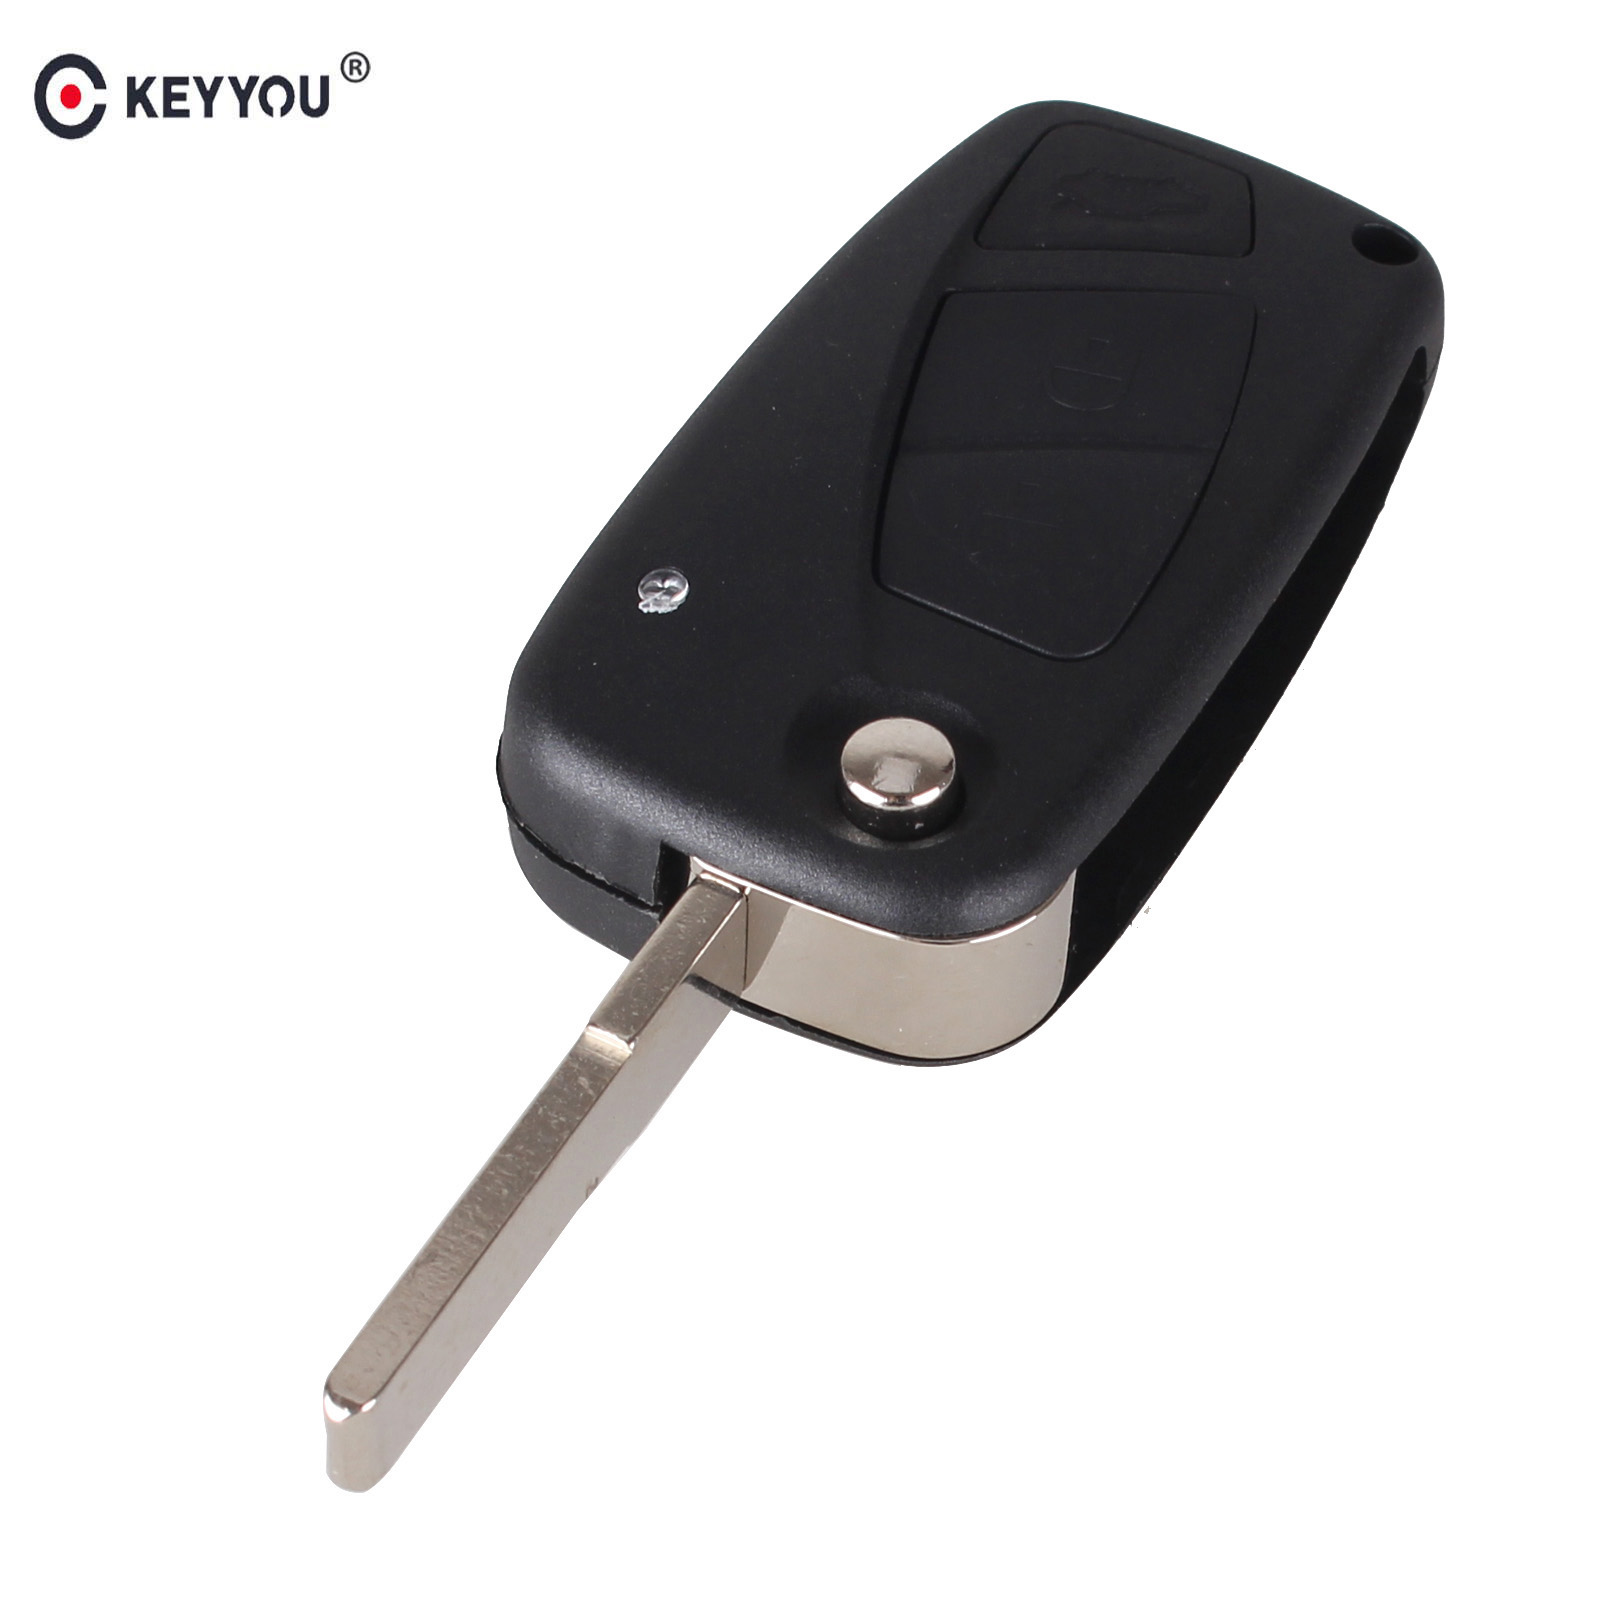 KEYYOU For FIAT 3 Button Punto Ducato Stilo Panda Bravo Navy Flip Fob Black 3 BTN Folding Remote Key Shell Case SIP22 blade free shipping flip remote key shell colorful replacement cover shell for fiat 500 panda punto bravo case